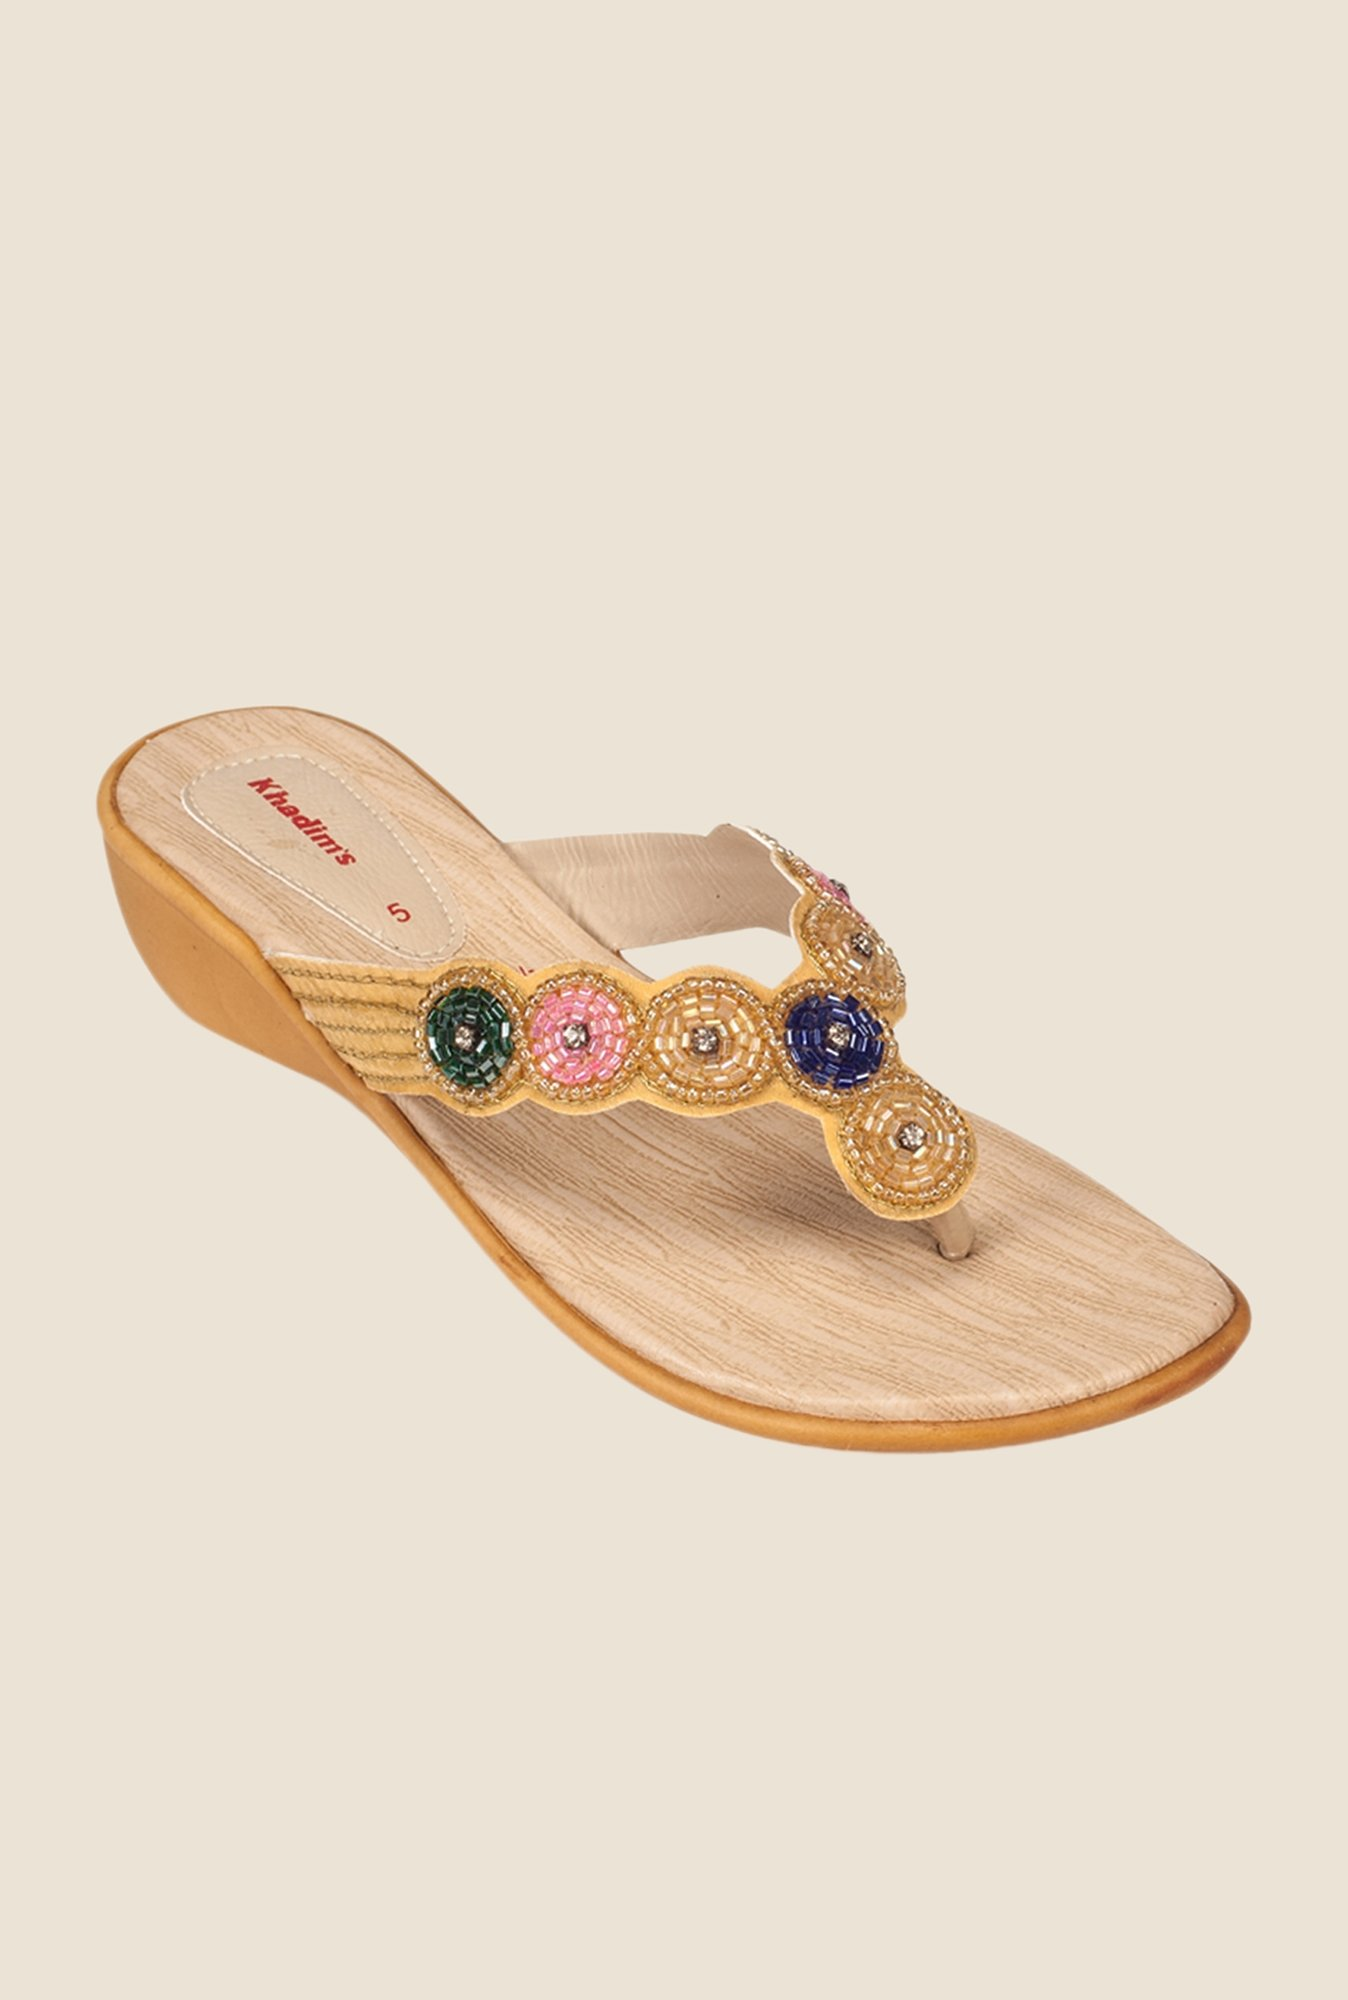 Khadim's Beige & Gold Wedge Sandals